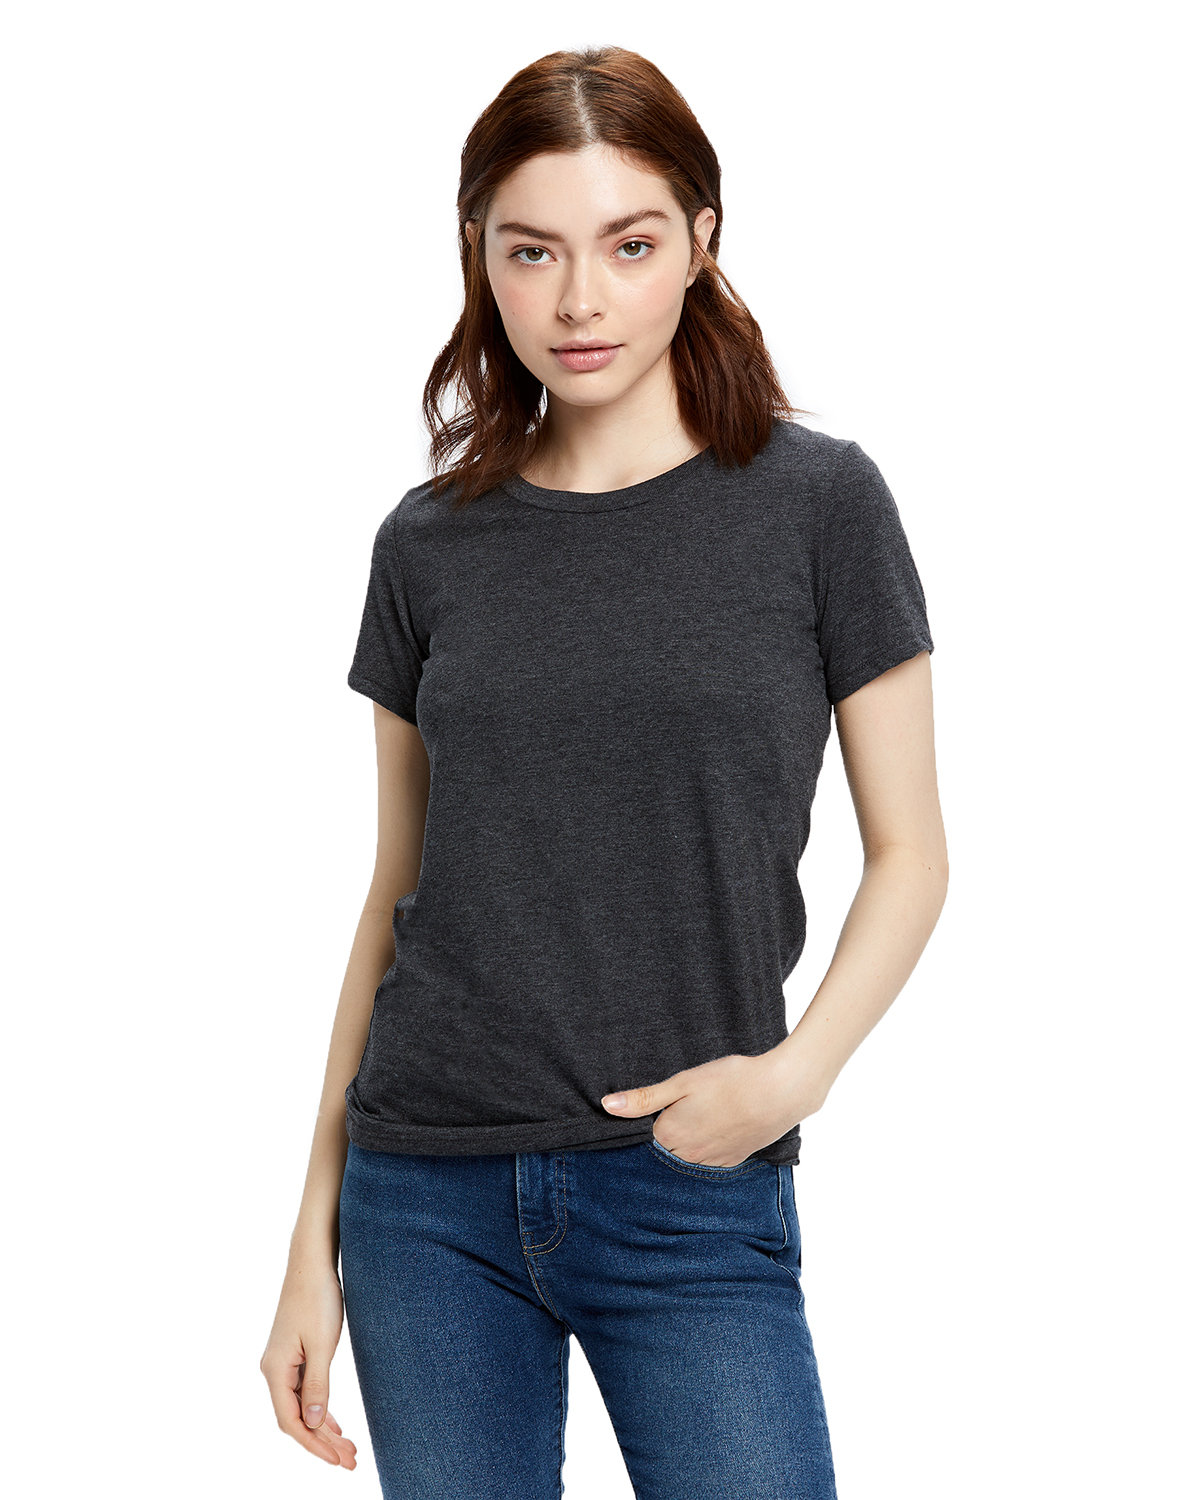 US Blanks Ladies' Made in USA Short Sleeve Crew T-Shirt HEATHER CHARCOAL